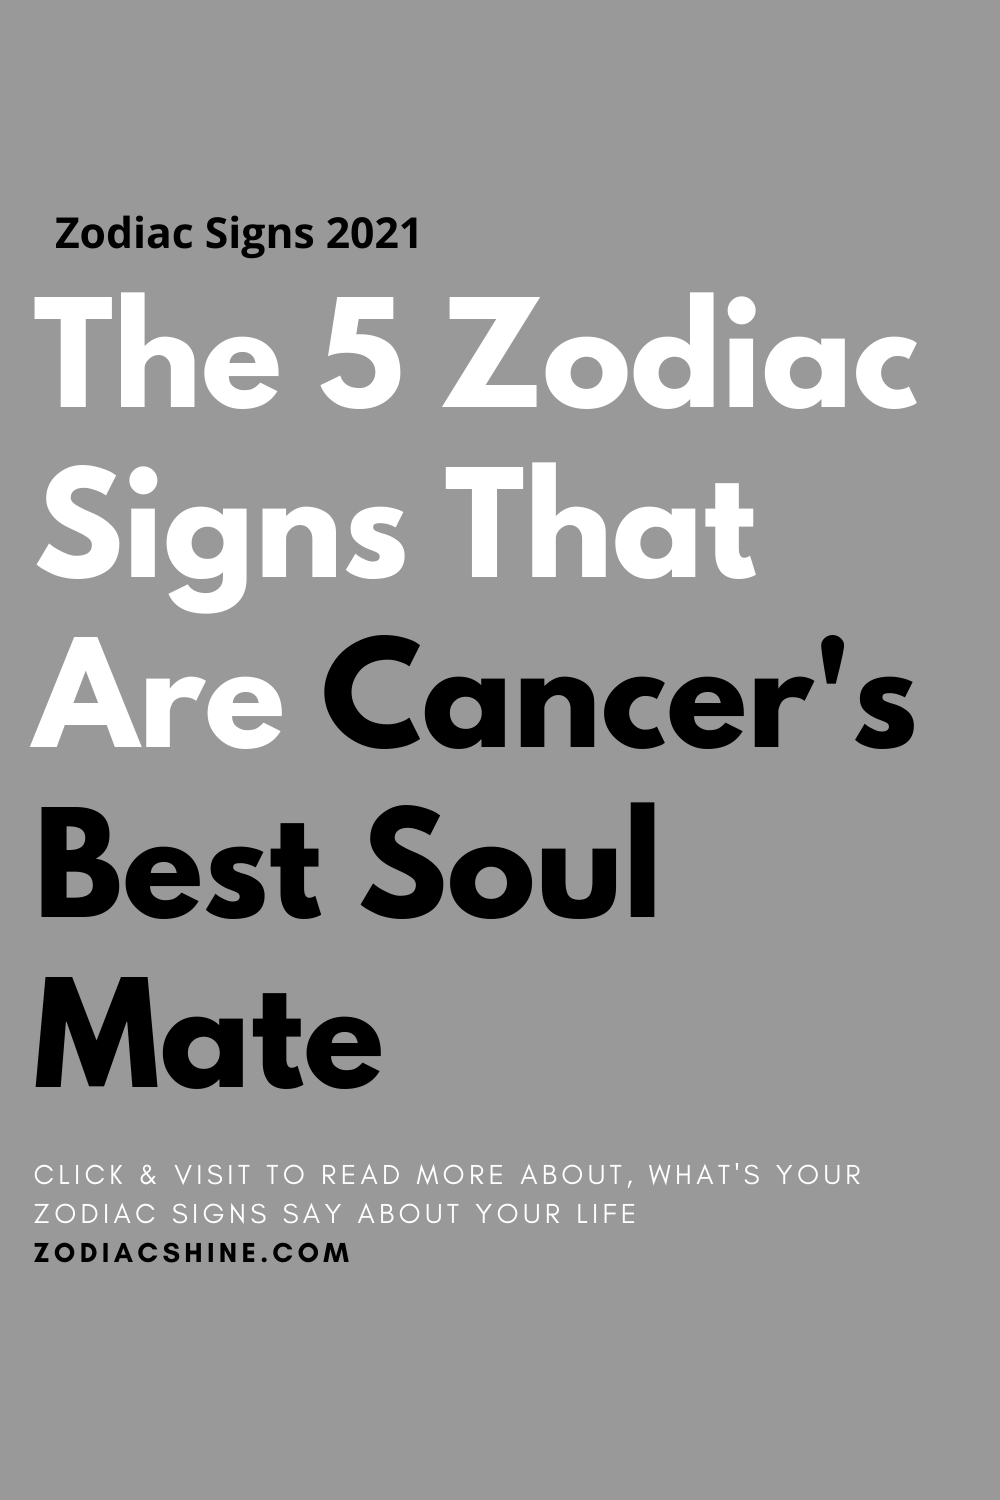 The 5 Zodiac Signs That Are Cancer's Best Soul Mate